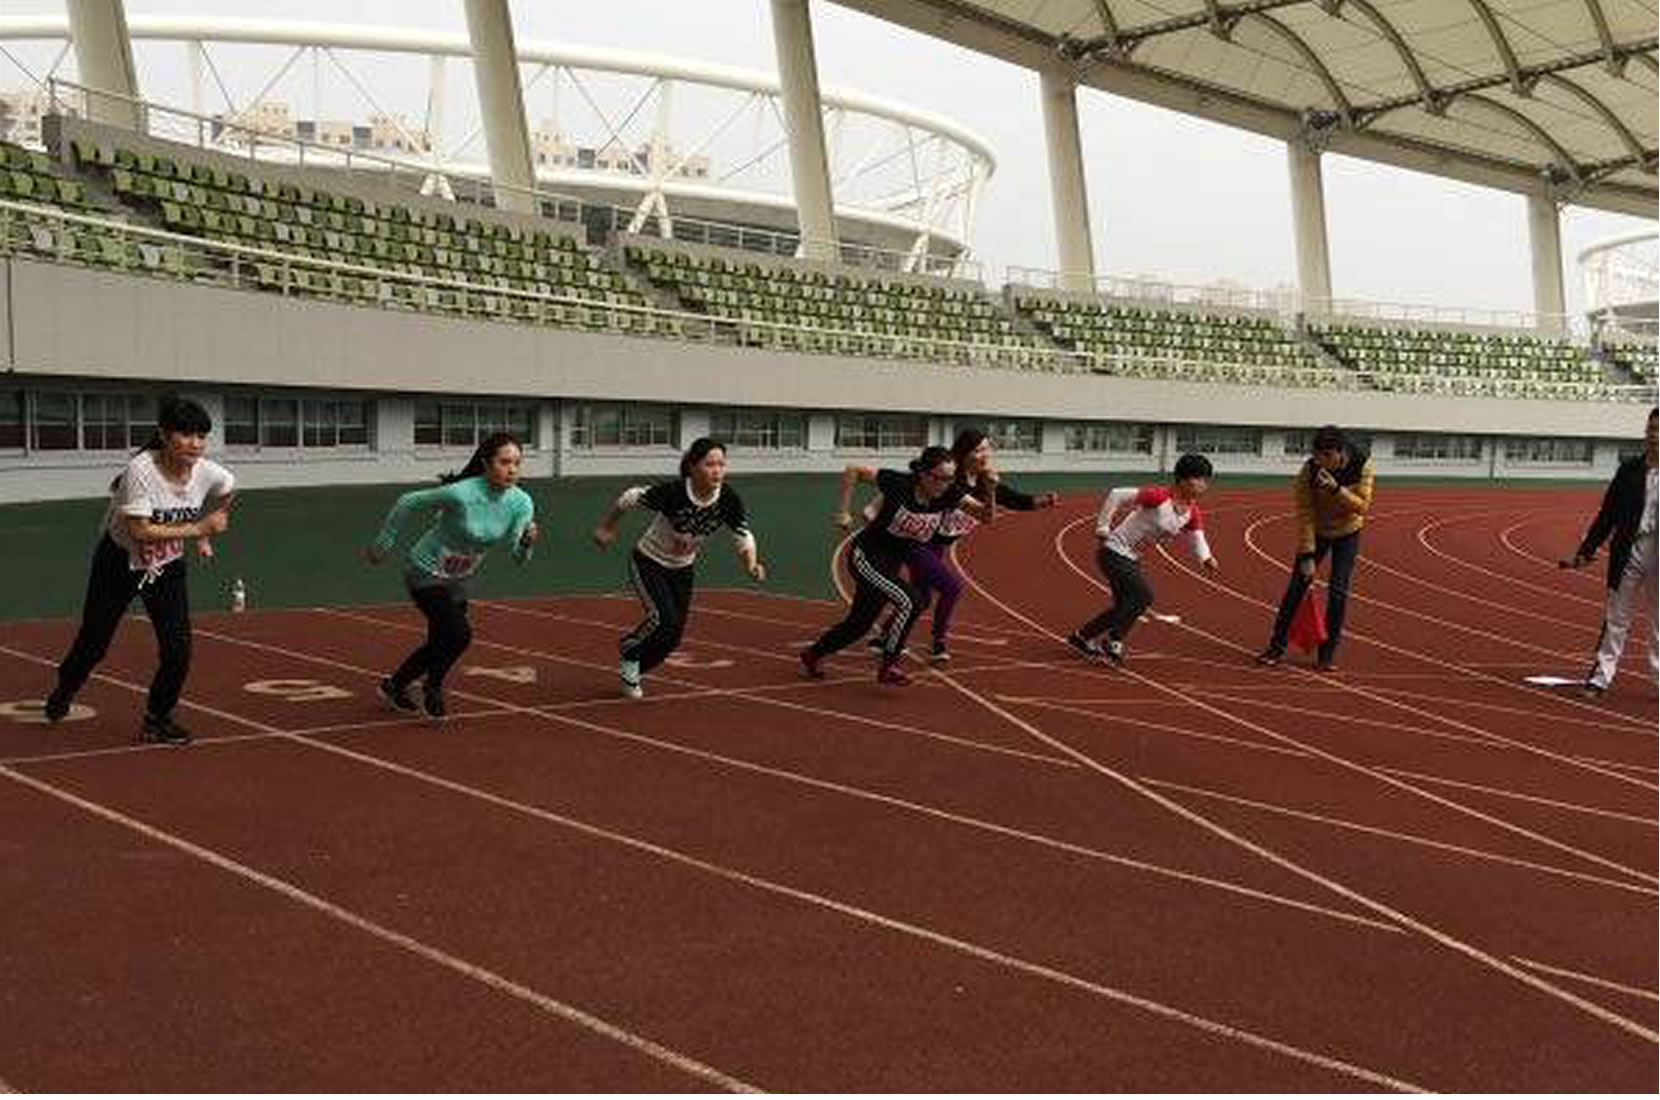 Yueqing 1st Sports Day